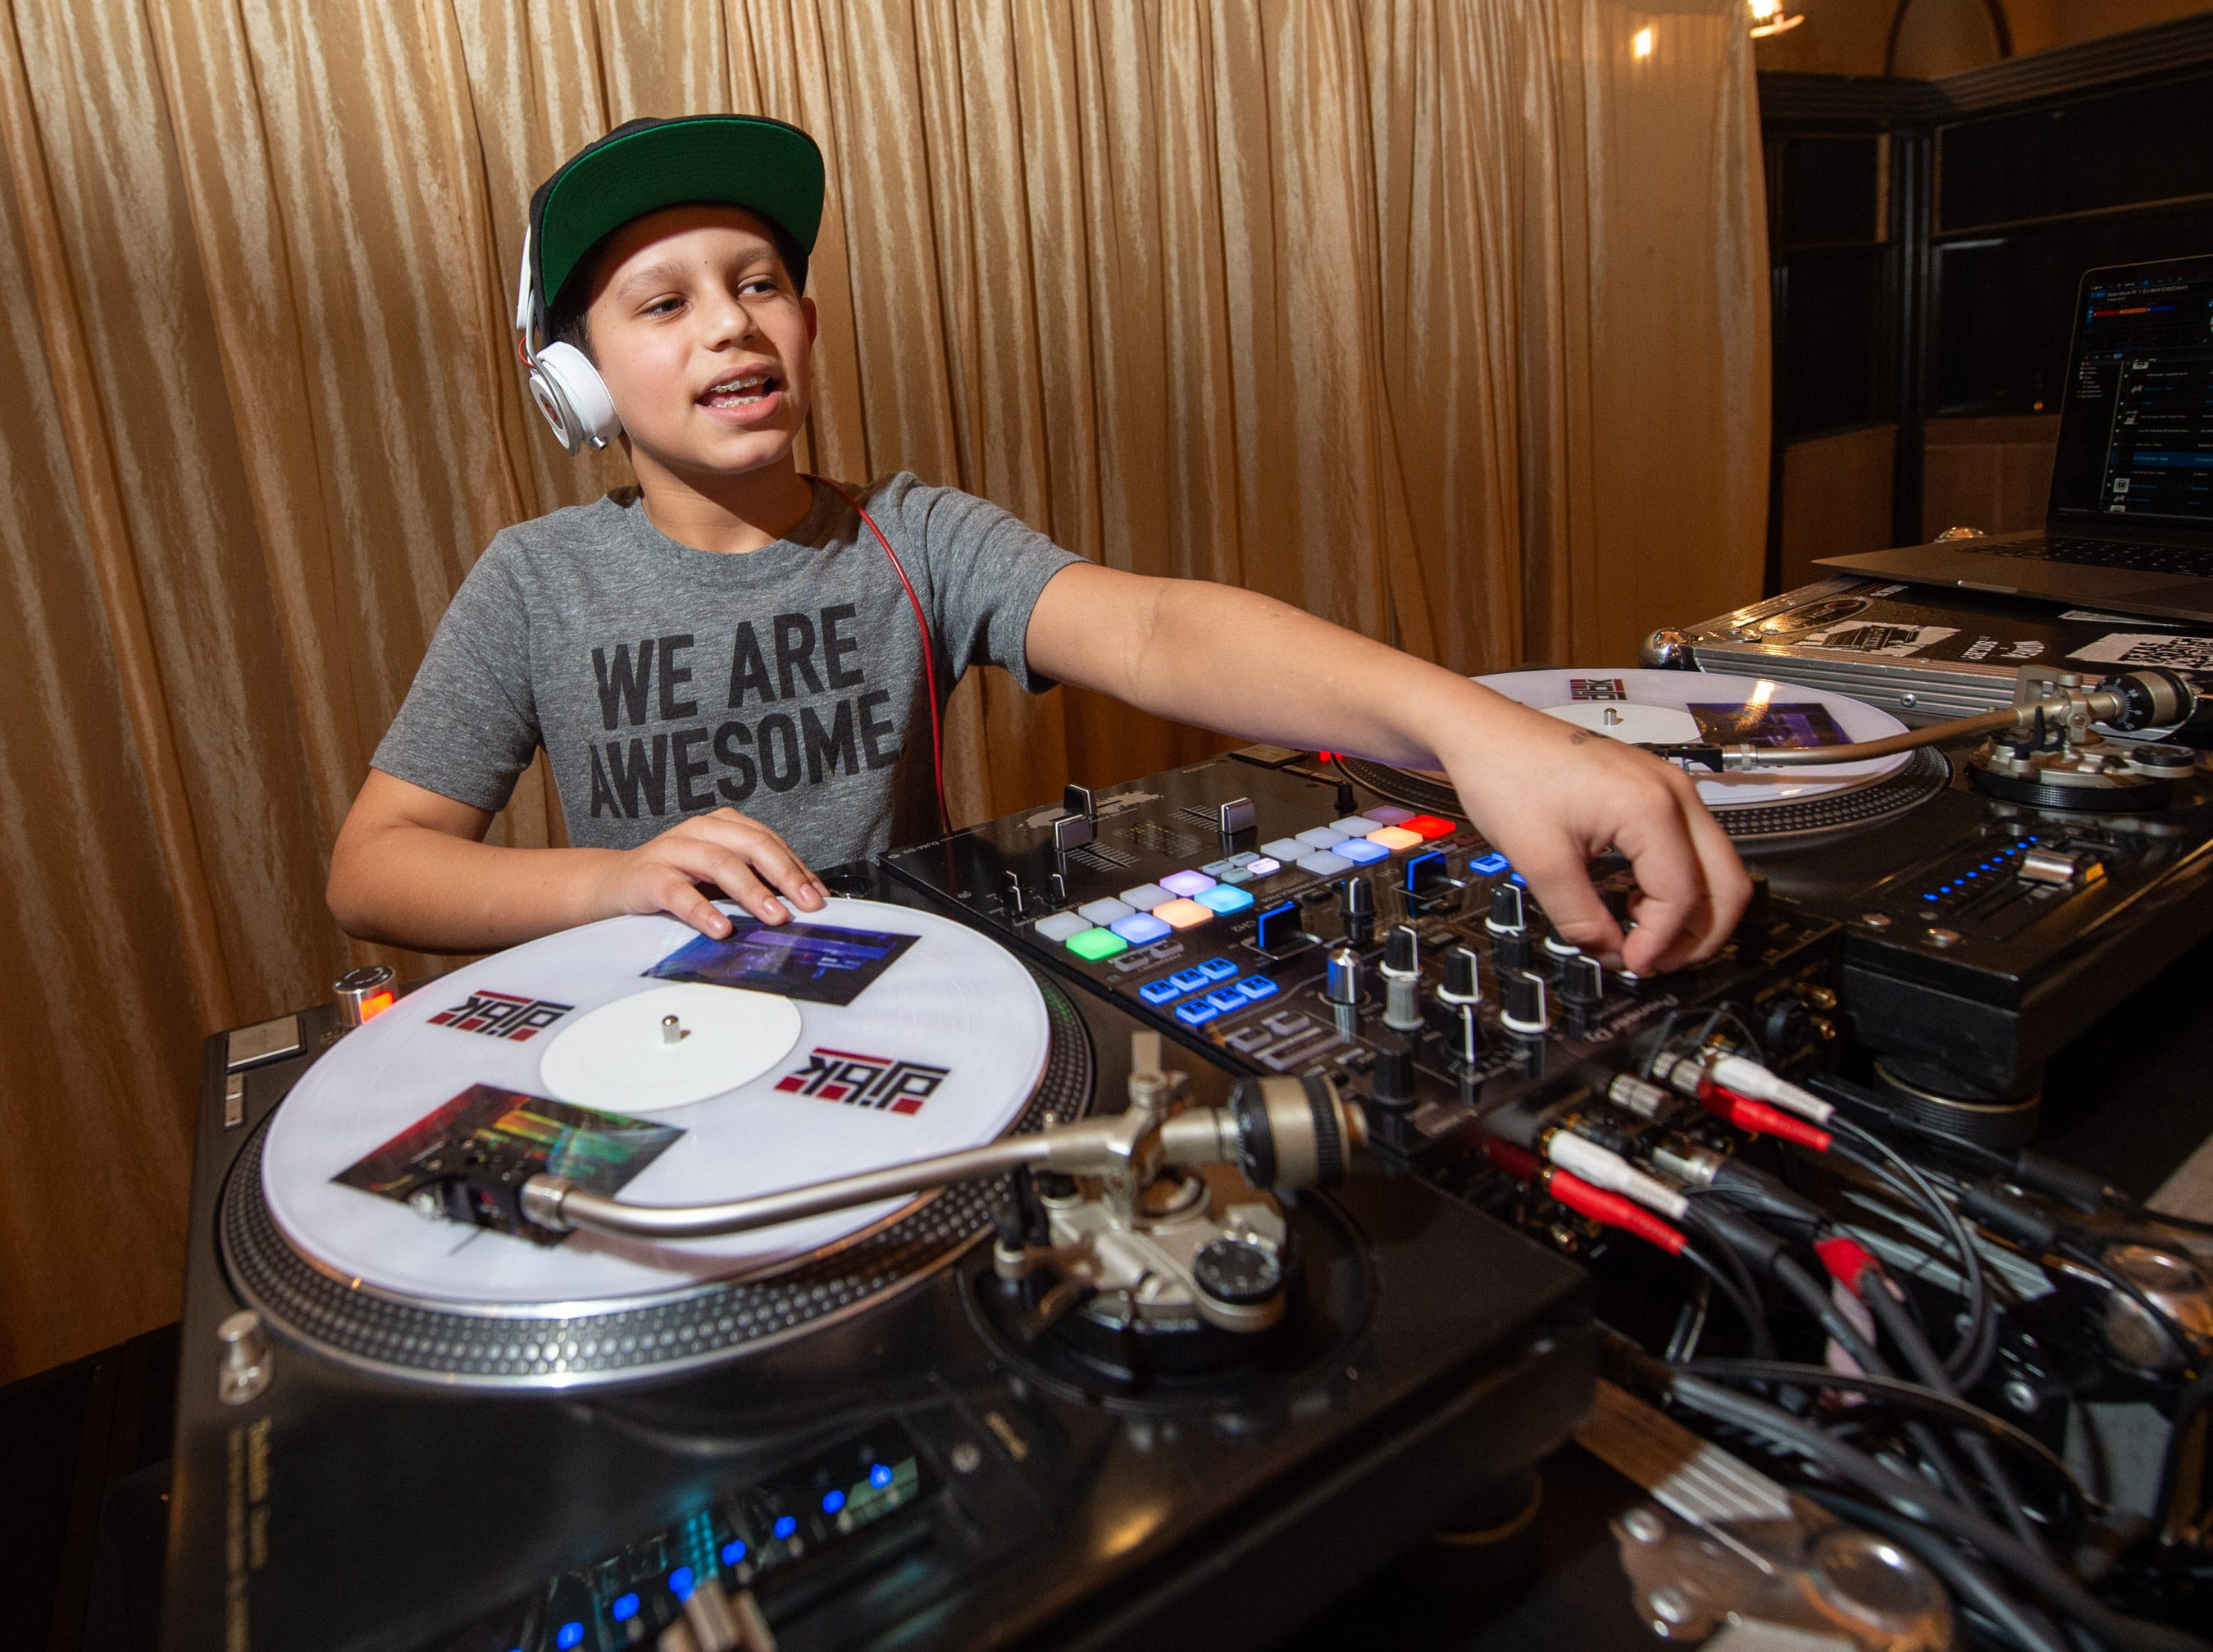 Eleven Year old DJ BK entertains the guests Monday, Dec. 31, 2018, at The 12th Annual Indy Masquerade held at Union Station in Indianapolis.